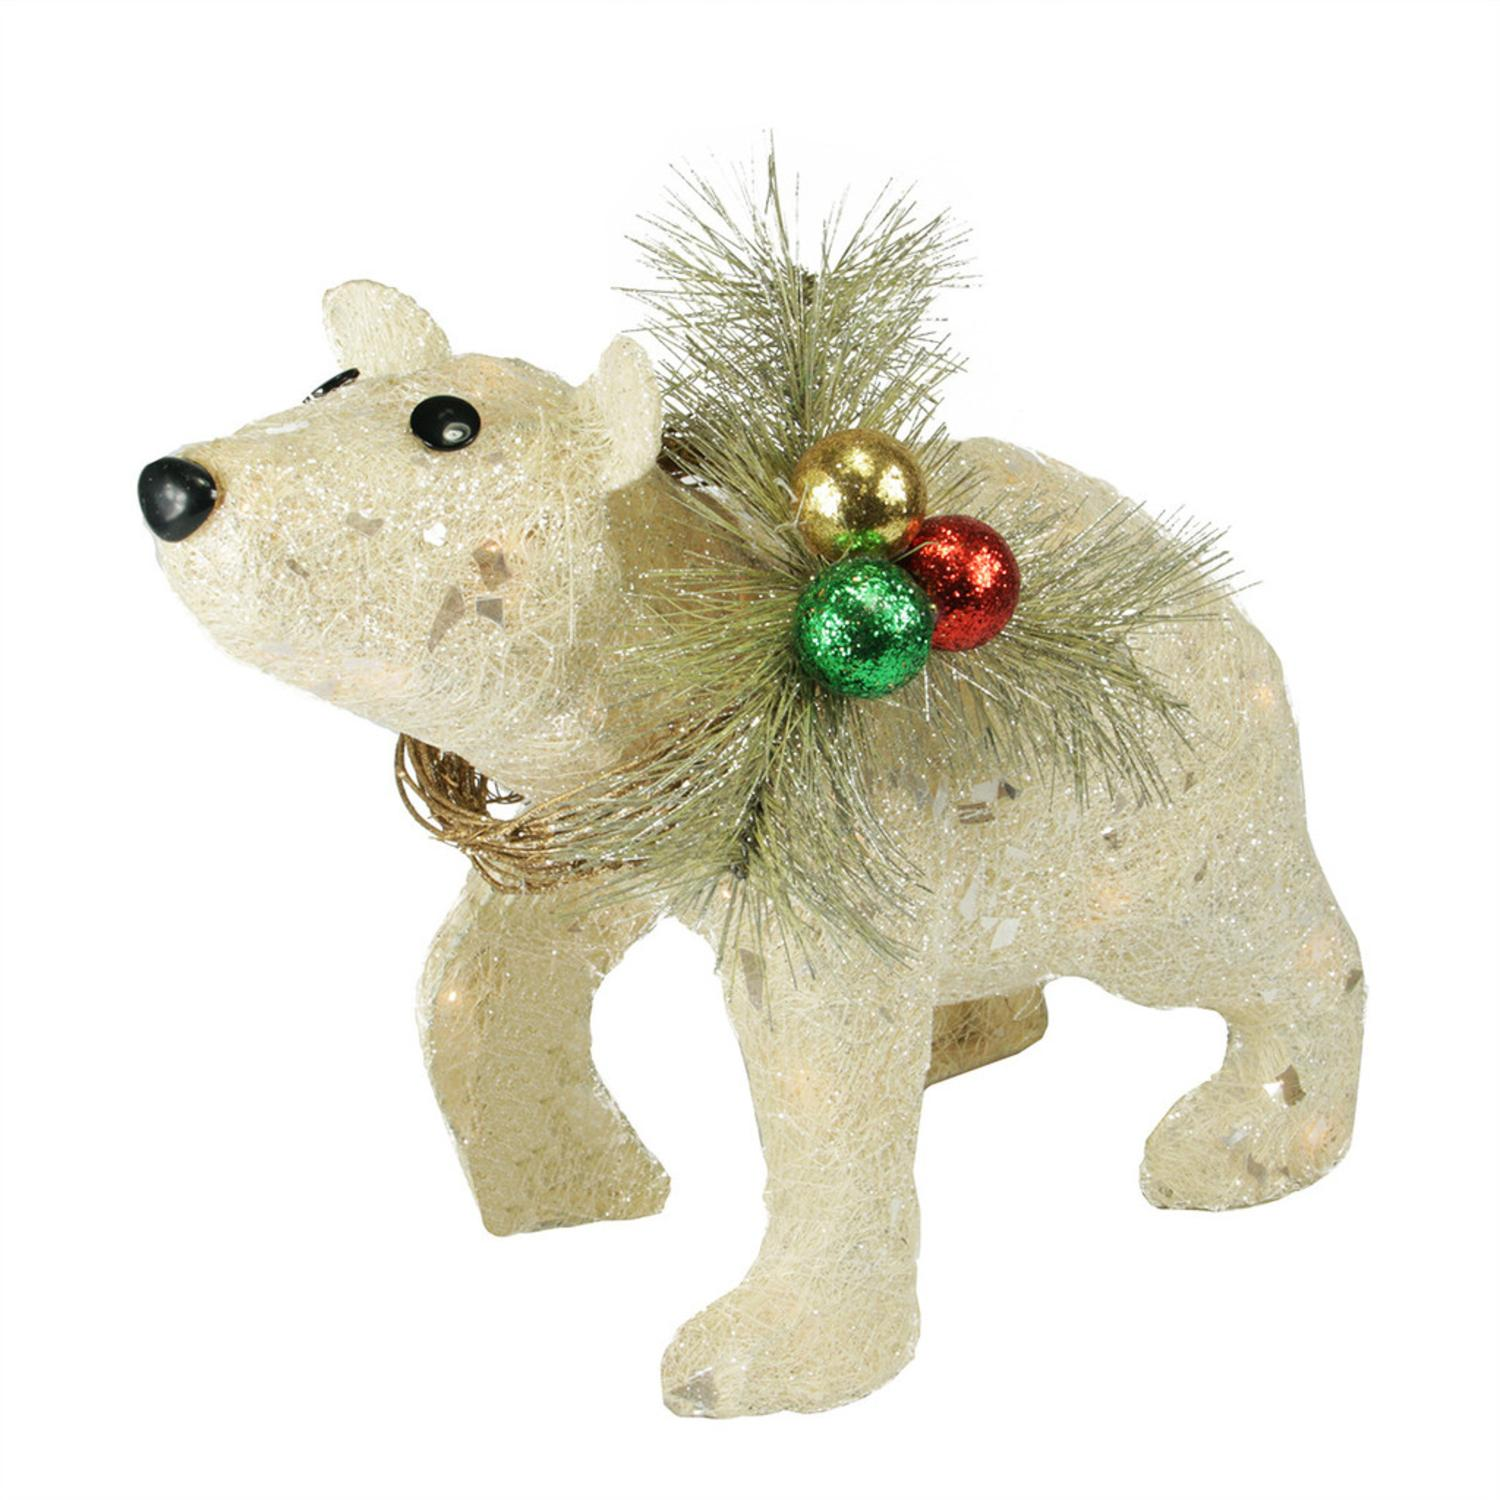 16 lighted sparkling sisal baby polar bear christmas yard art decoration walmartcom - Outdoor Polar Bear Christmas Decorations